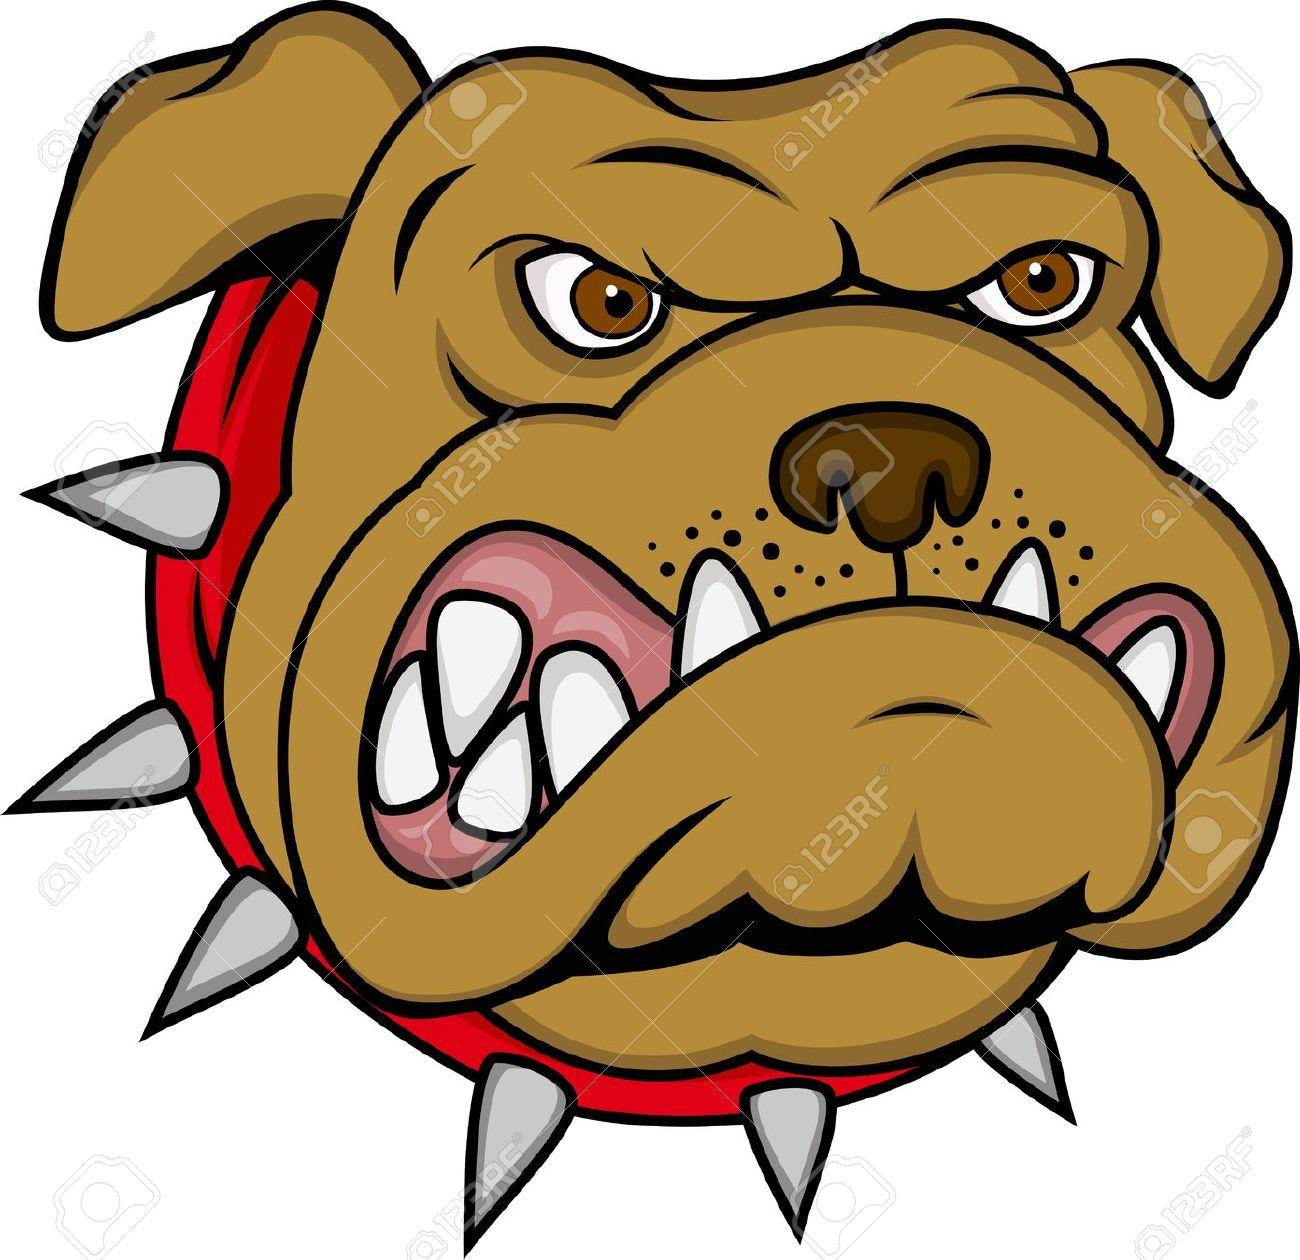 mean dog clipart at getdrawings com free for personal use mean dog rh getdrawings com